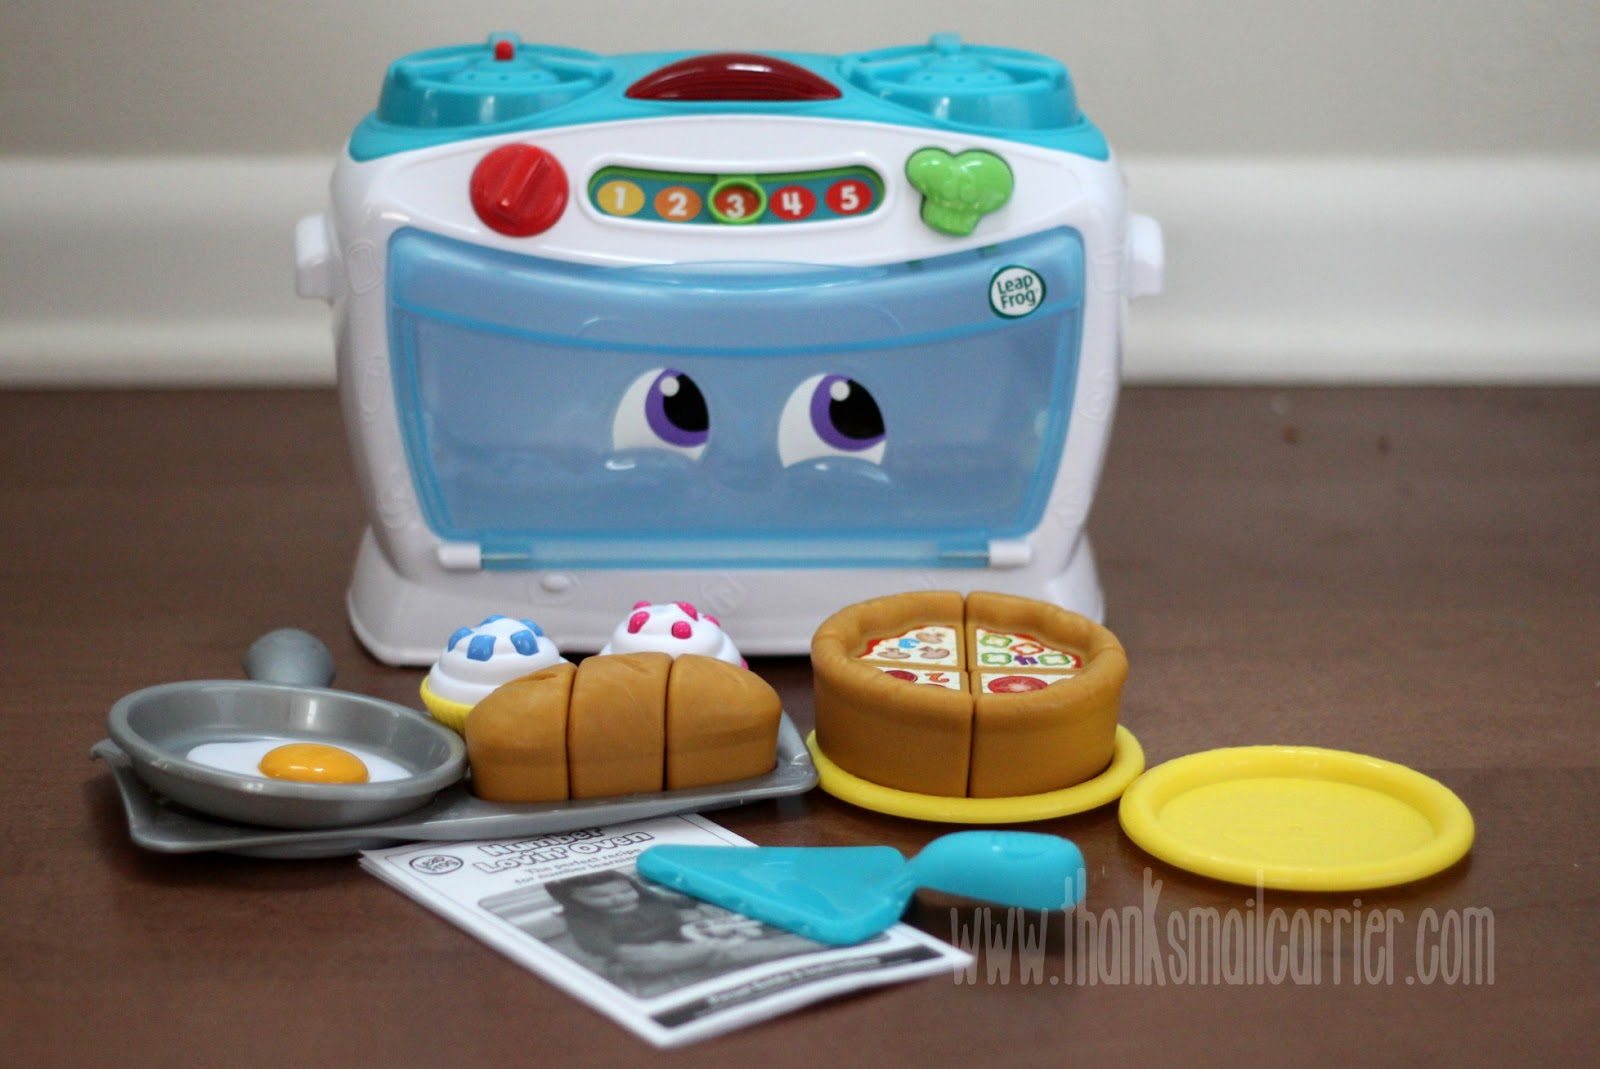 LeapFrog Number Lovin' Oven review